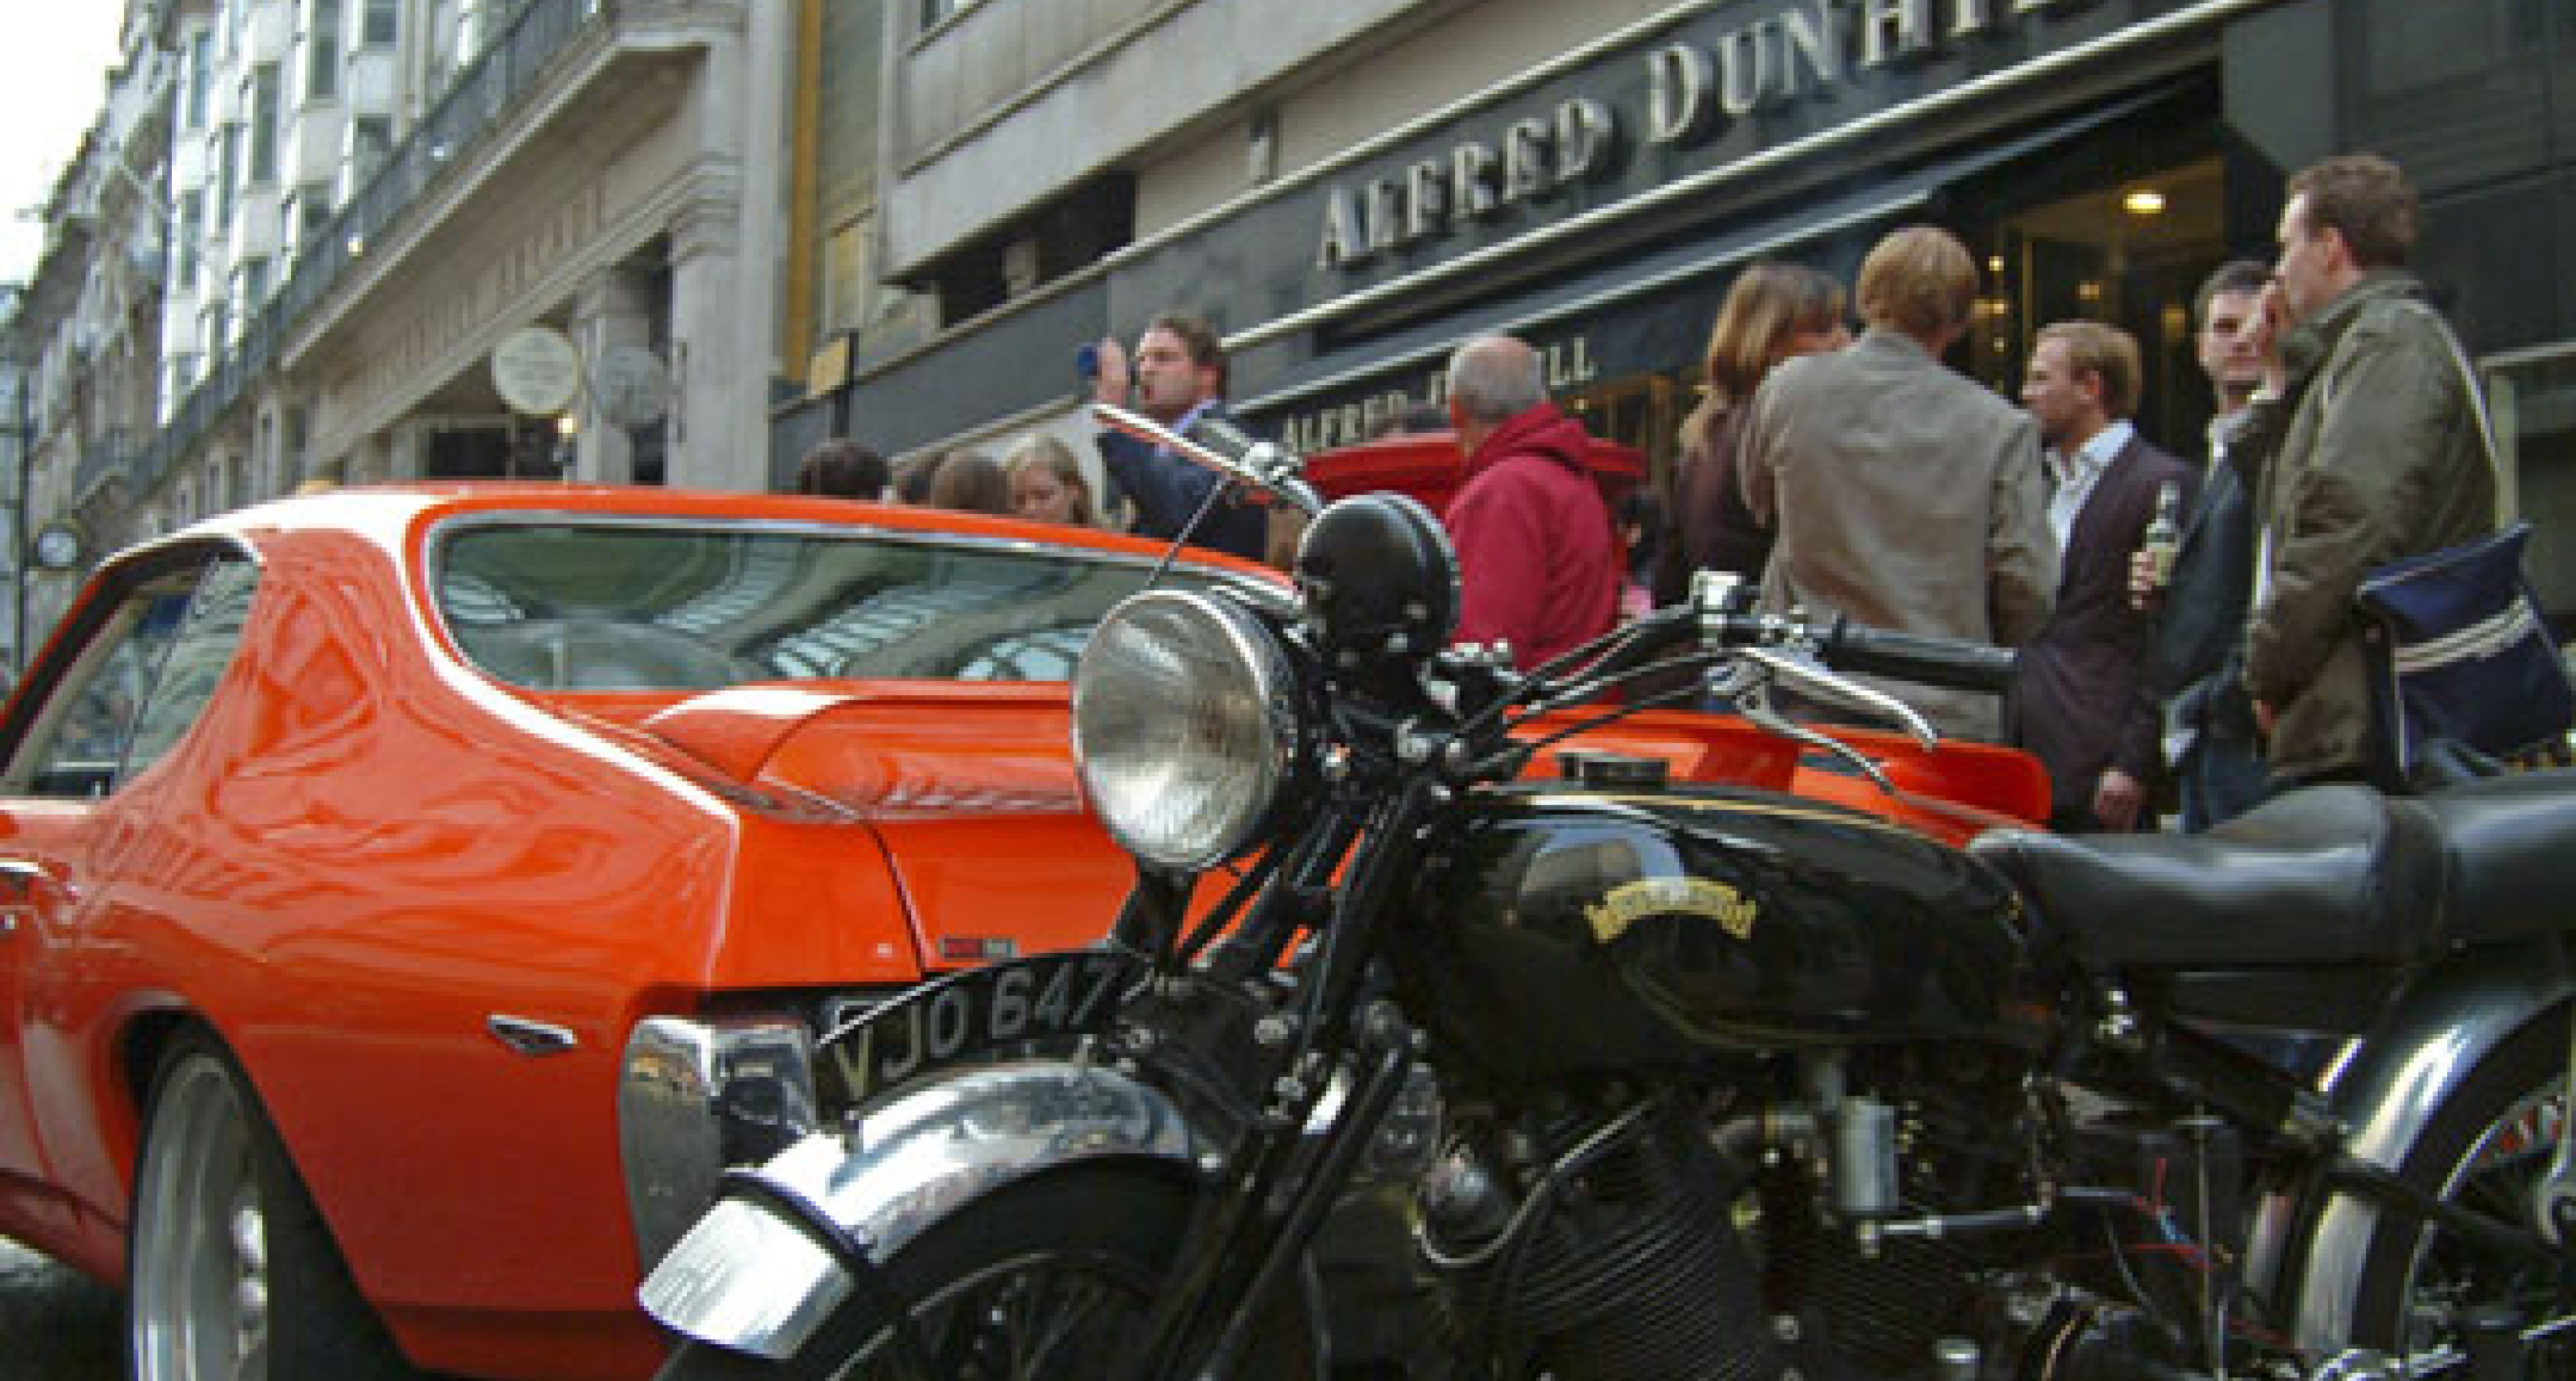 Keep your motor running - a celebration of dunhill's Motorities